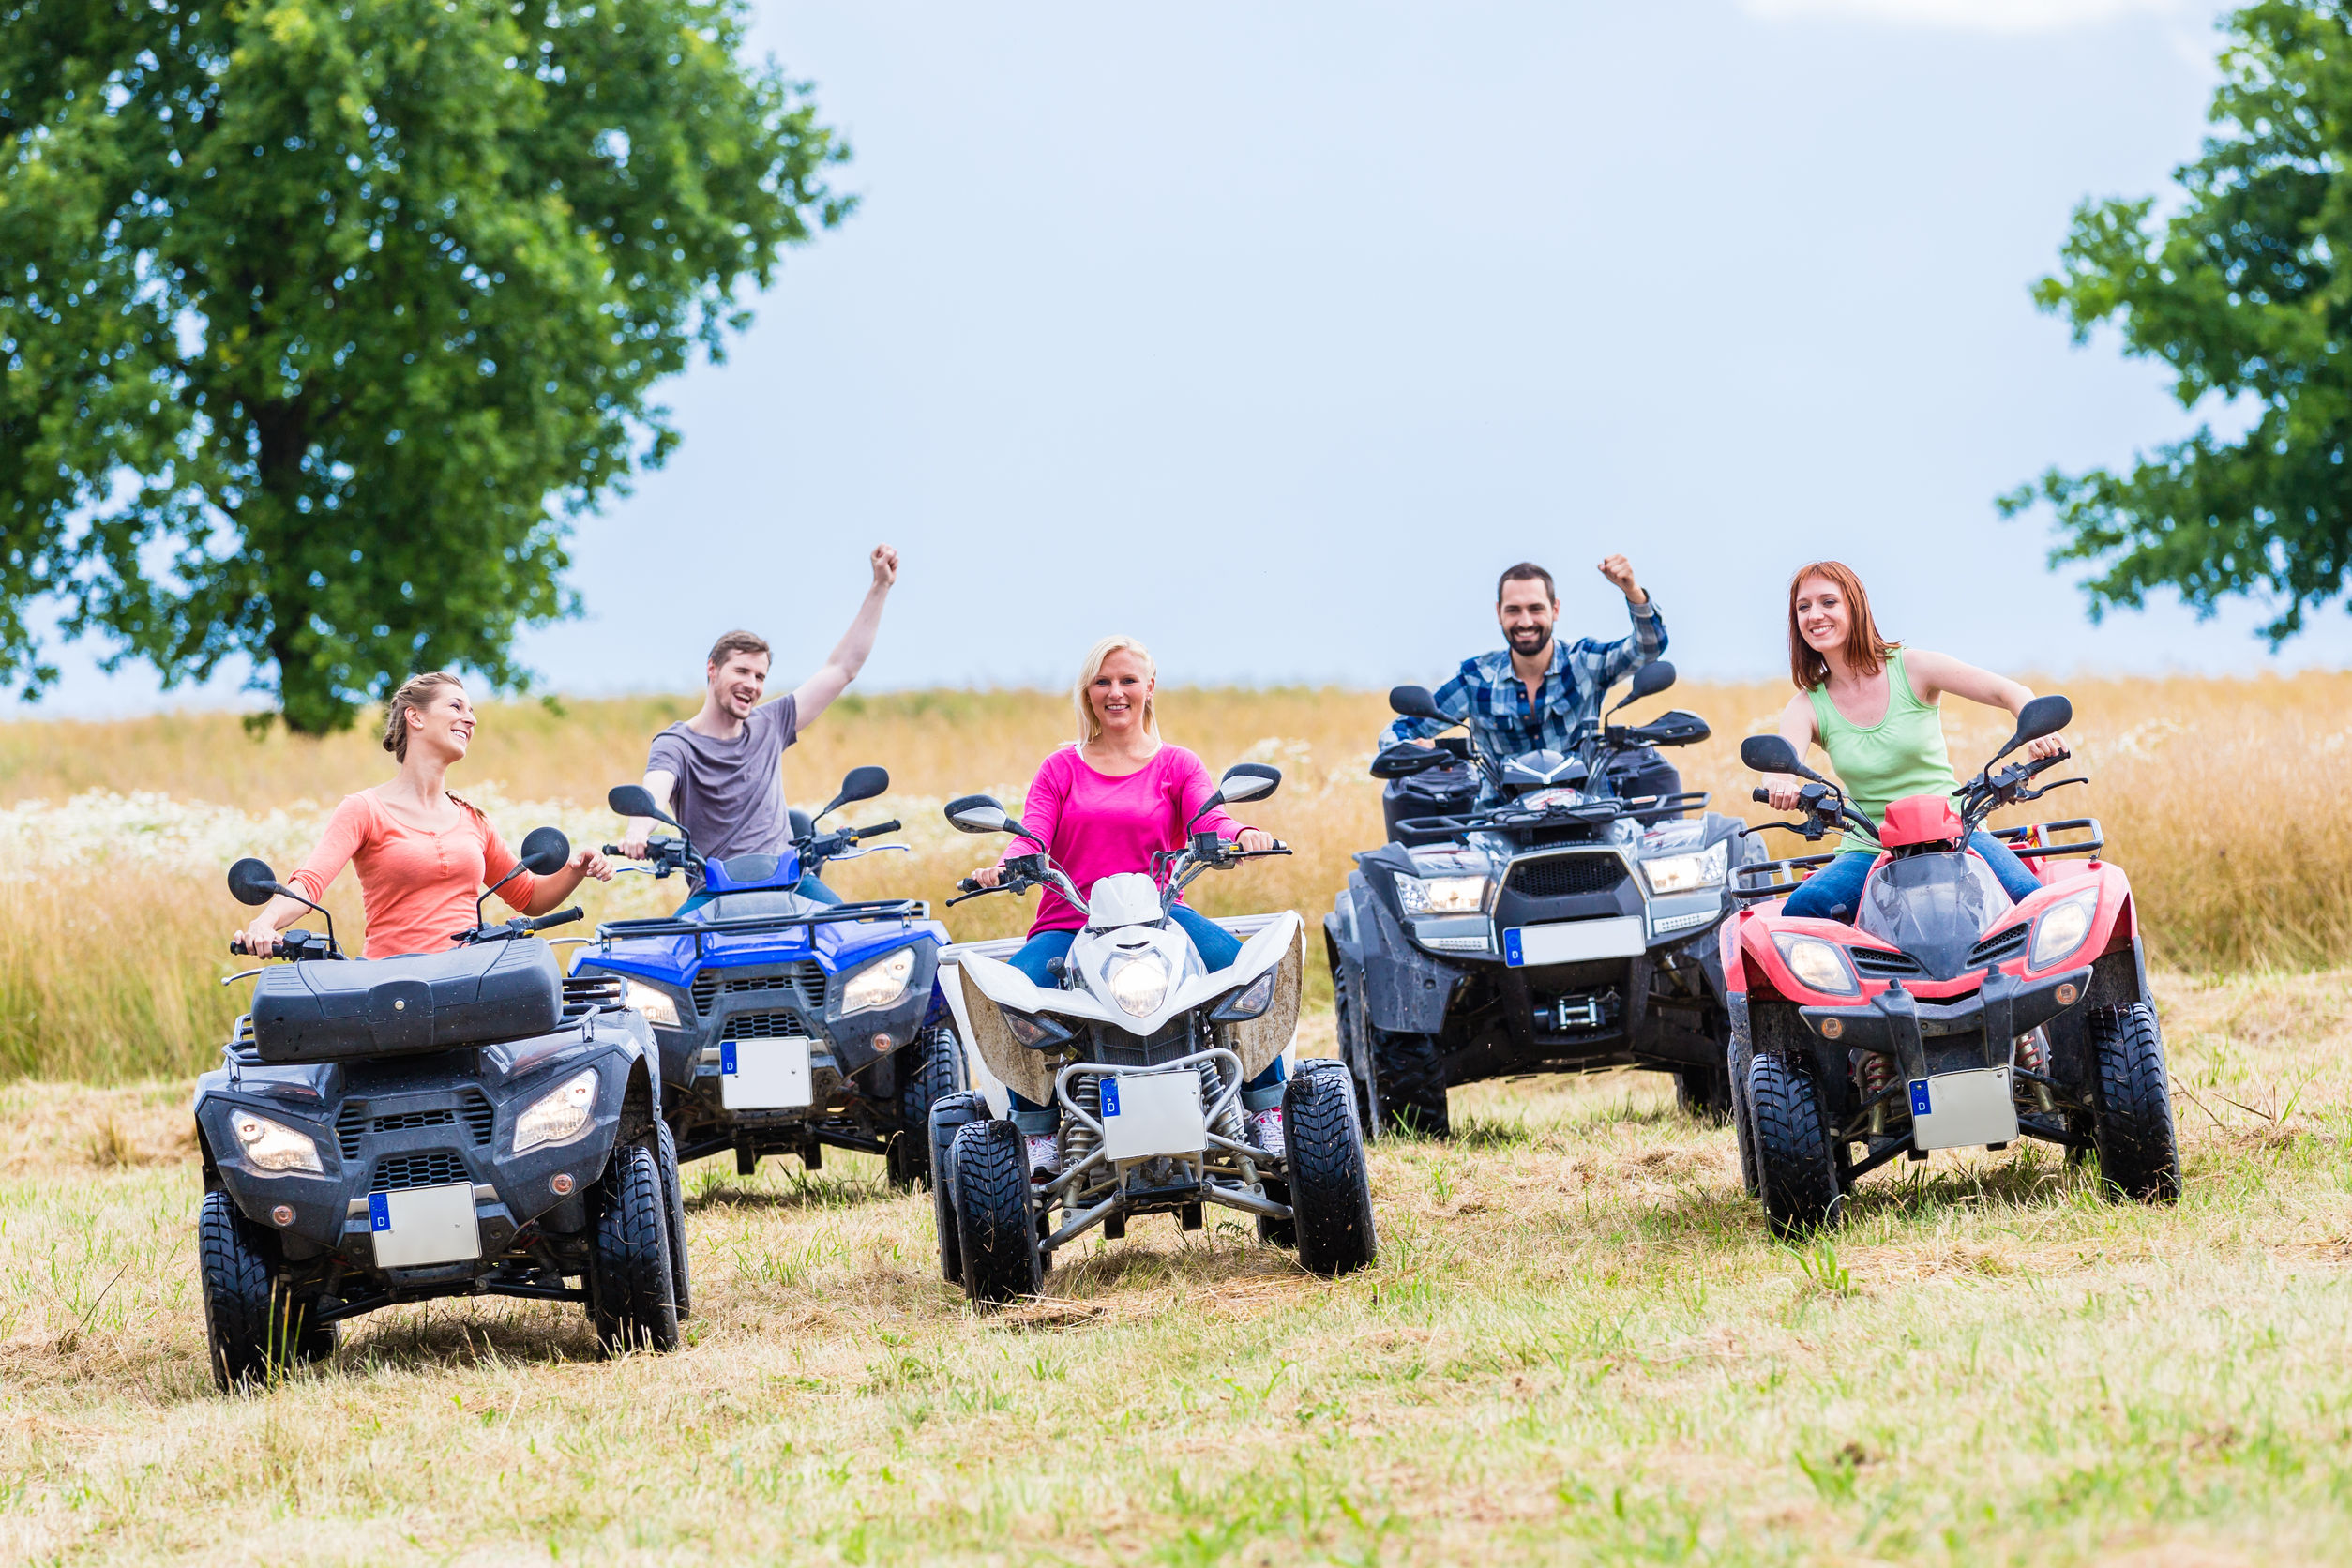 Englewood, CO. ATV Insurance